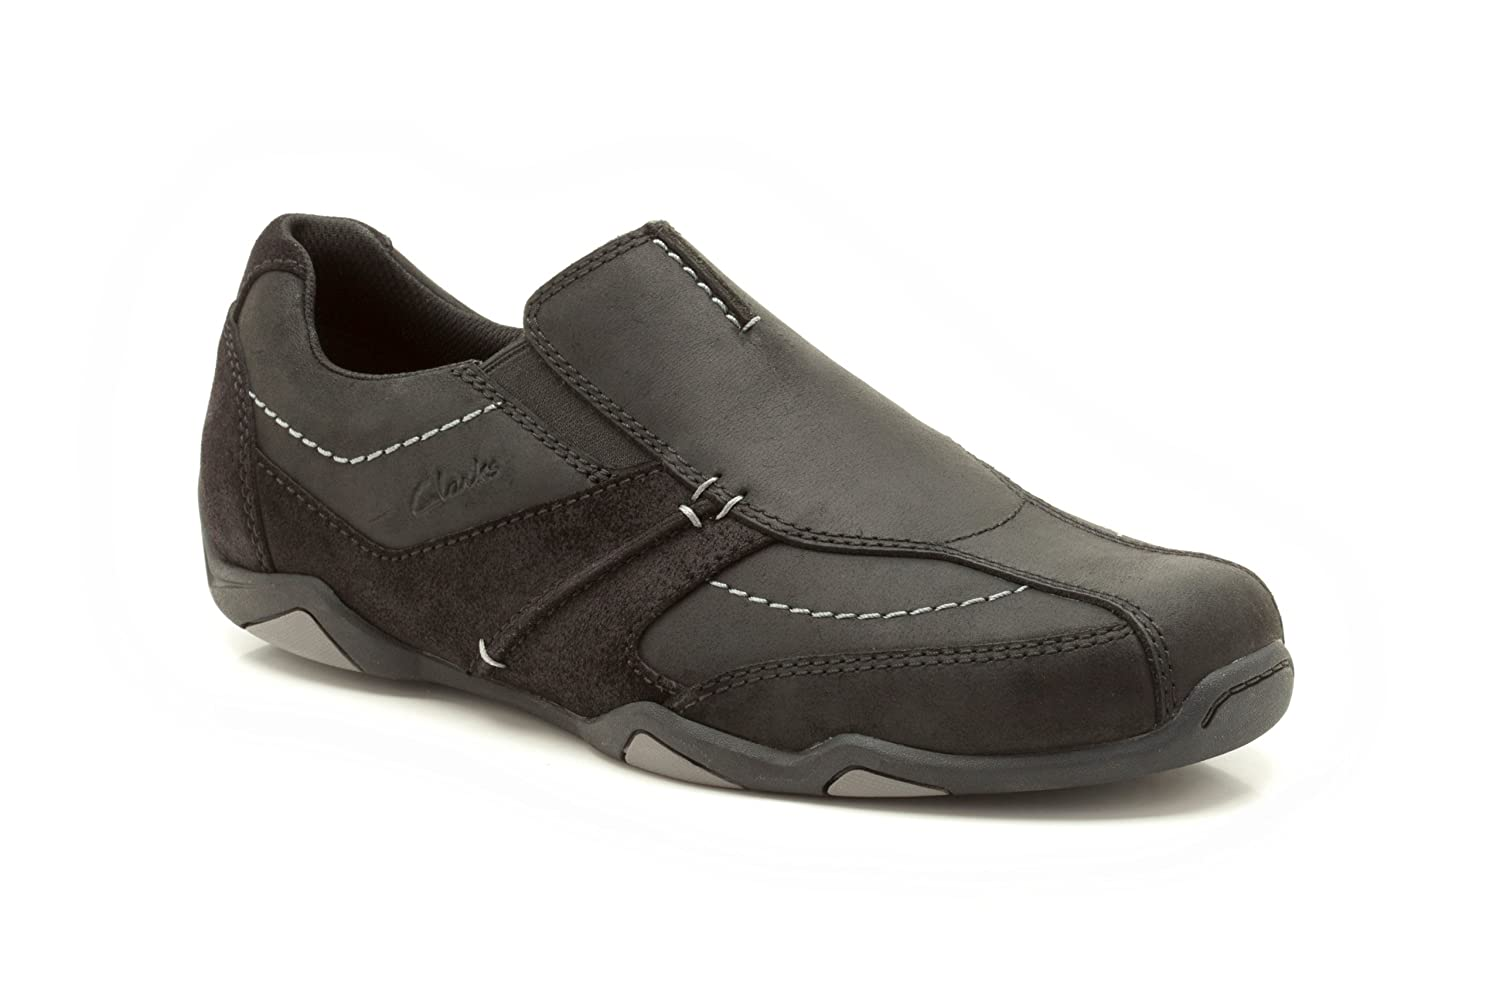 7f40583e6bf Clarks Mens Casual Rawson Line Nubuck Shoes In Black Wide Fit Size 10.5   Amazon.co.uk  Shoes   Bags